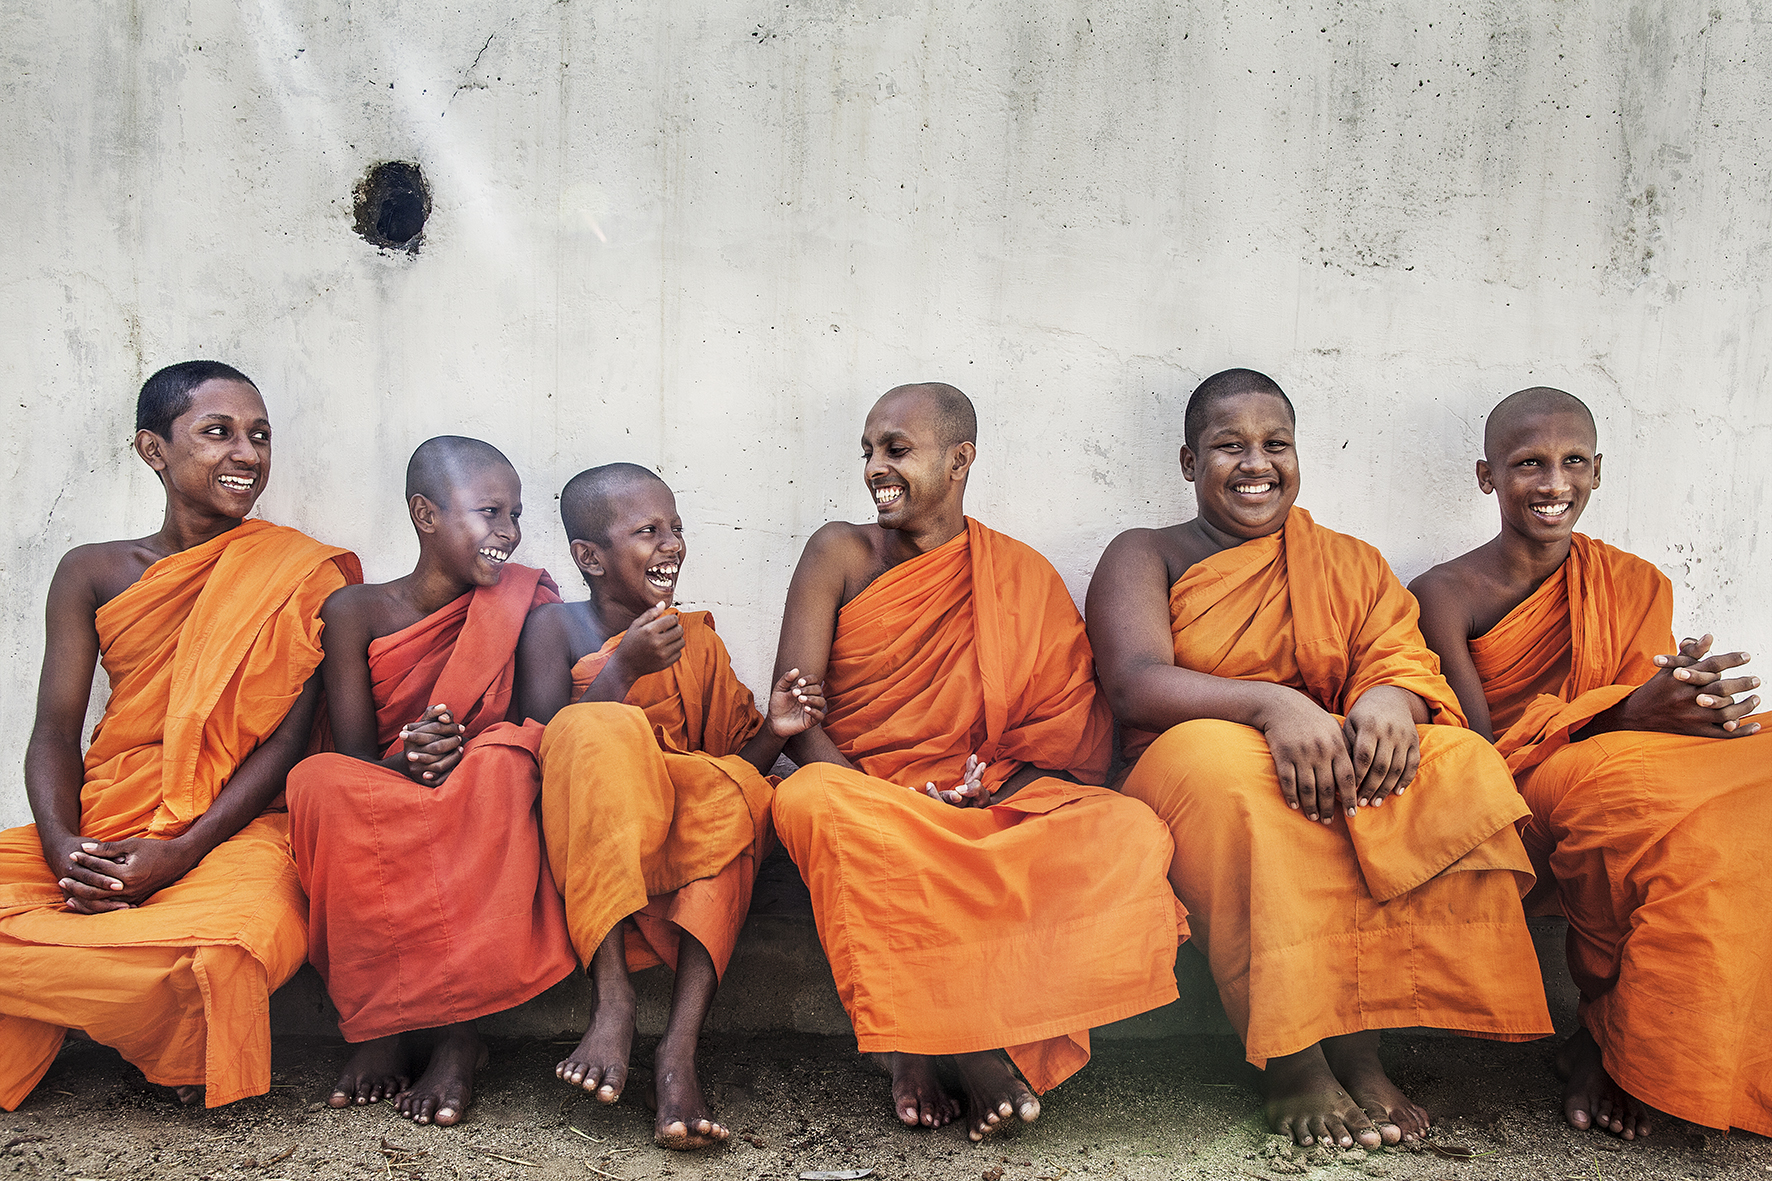 Sri Lanka Travel monks